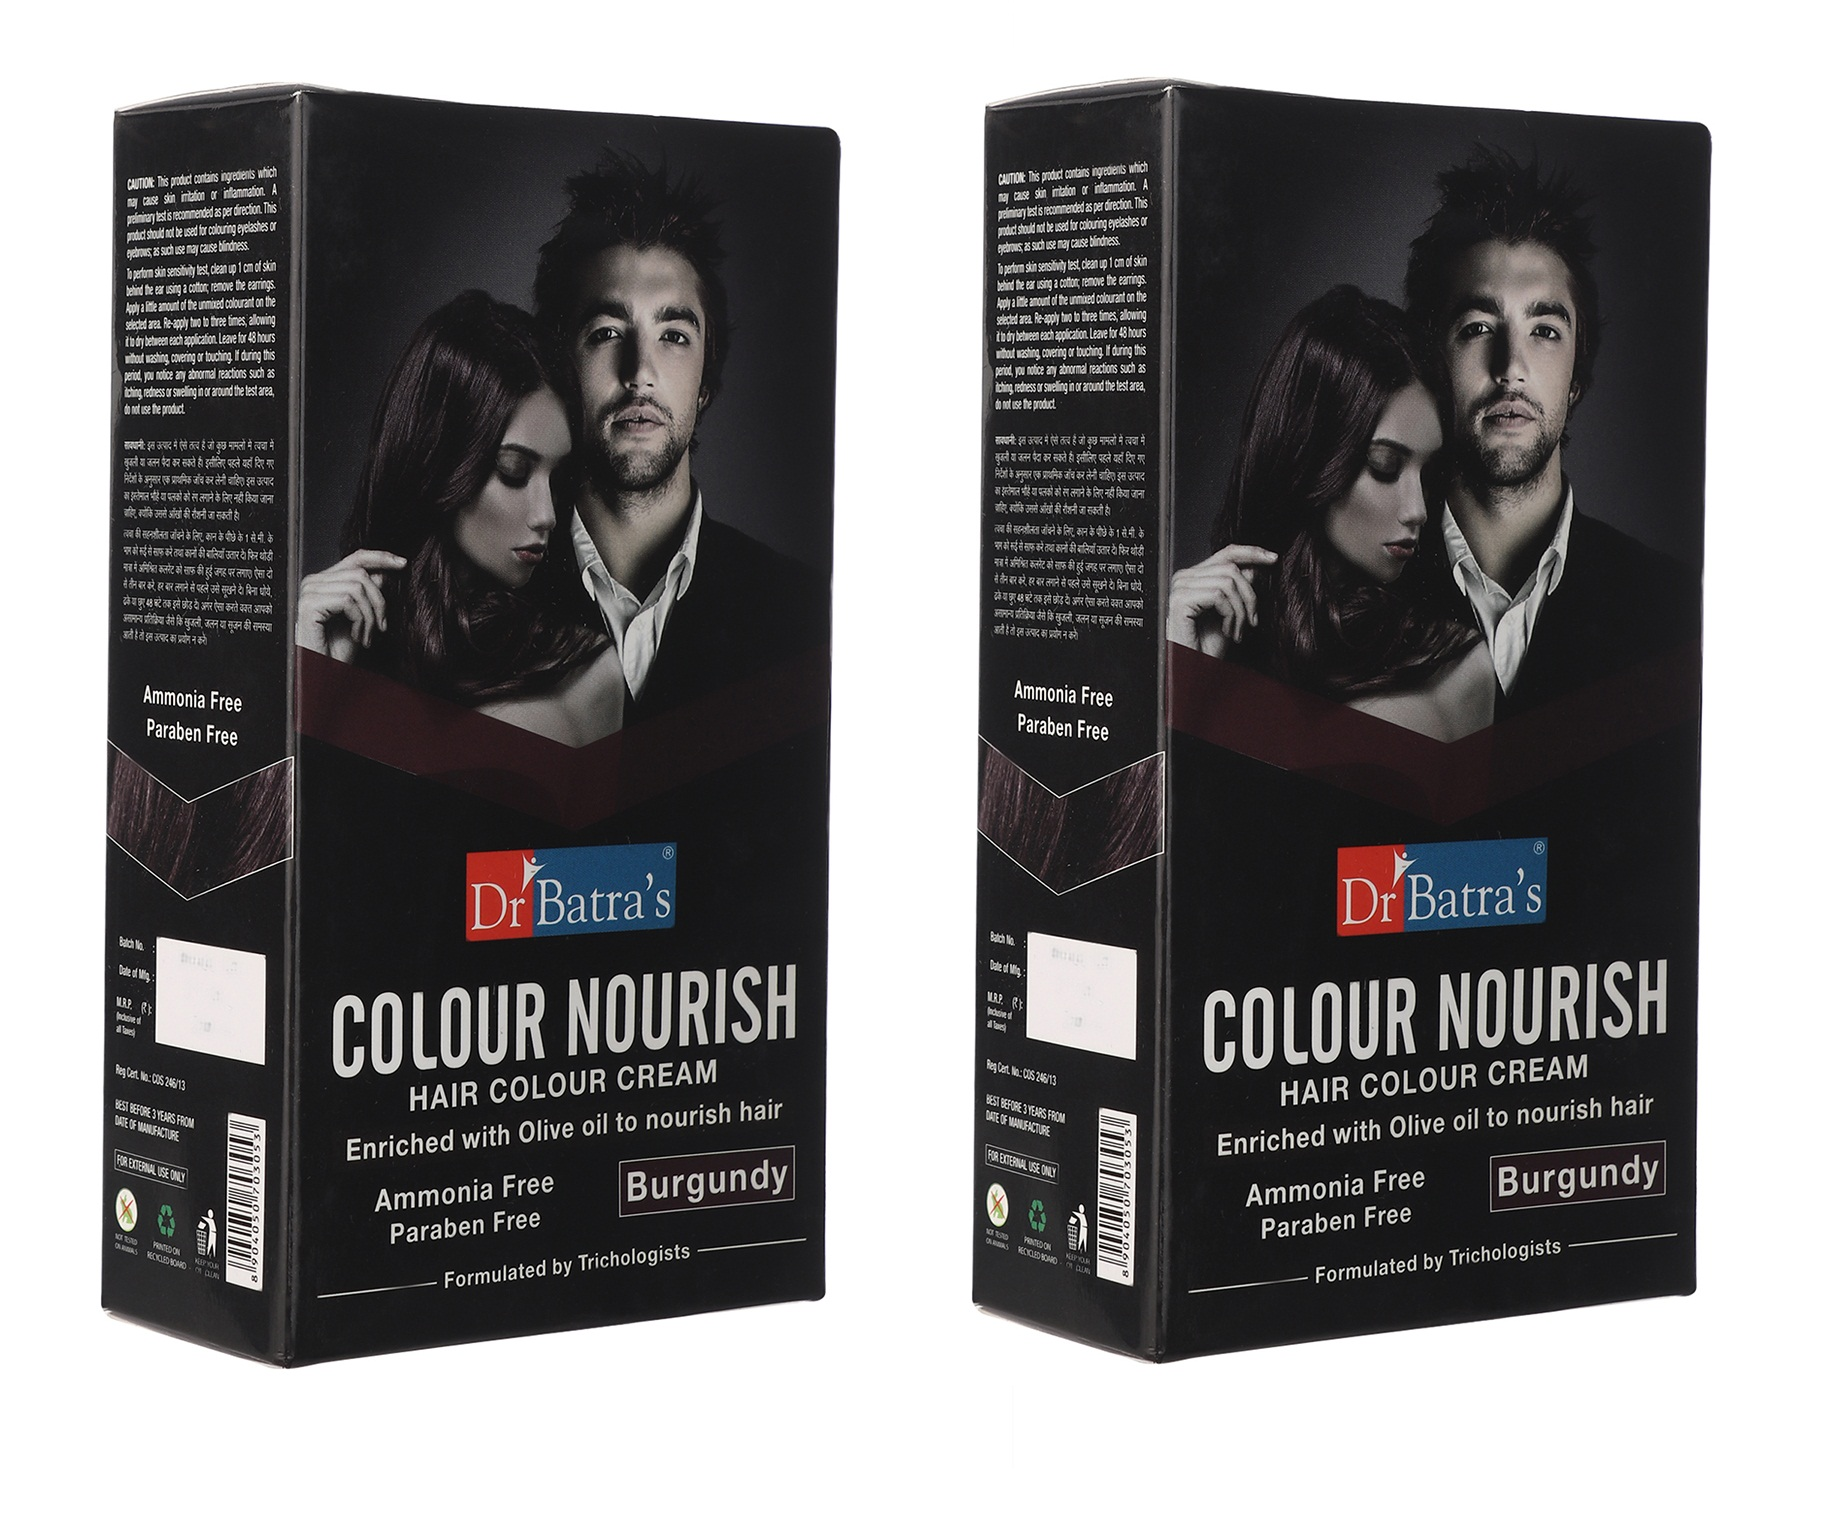 Dr Batra's | Dr Batra's Colour Nourish Hair Ammonia, Paraben Free Colour Cream Enriched With Olive Oil to Nourish Hair Burgundy - 120 gm (Pack of 2)